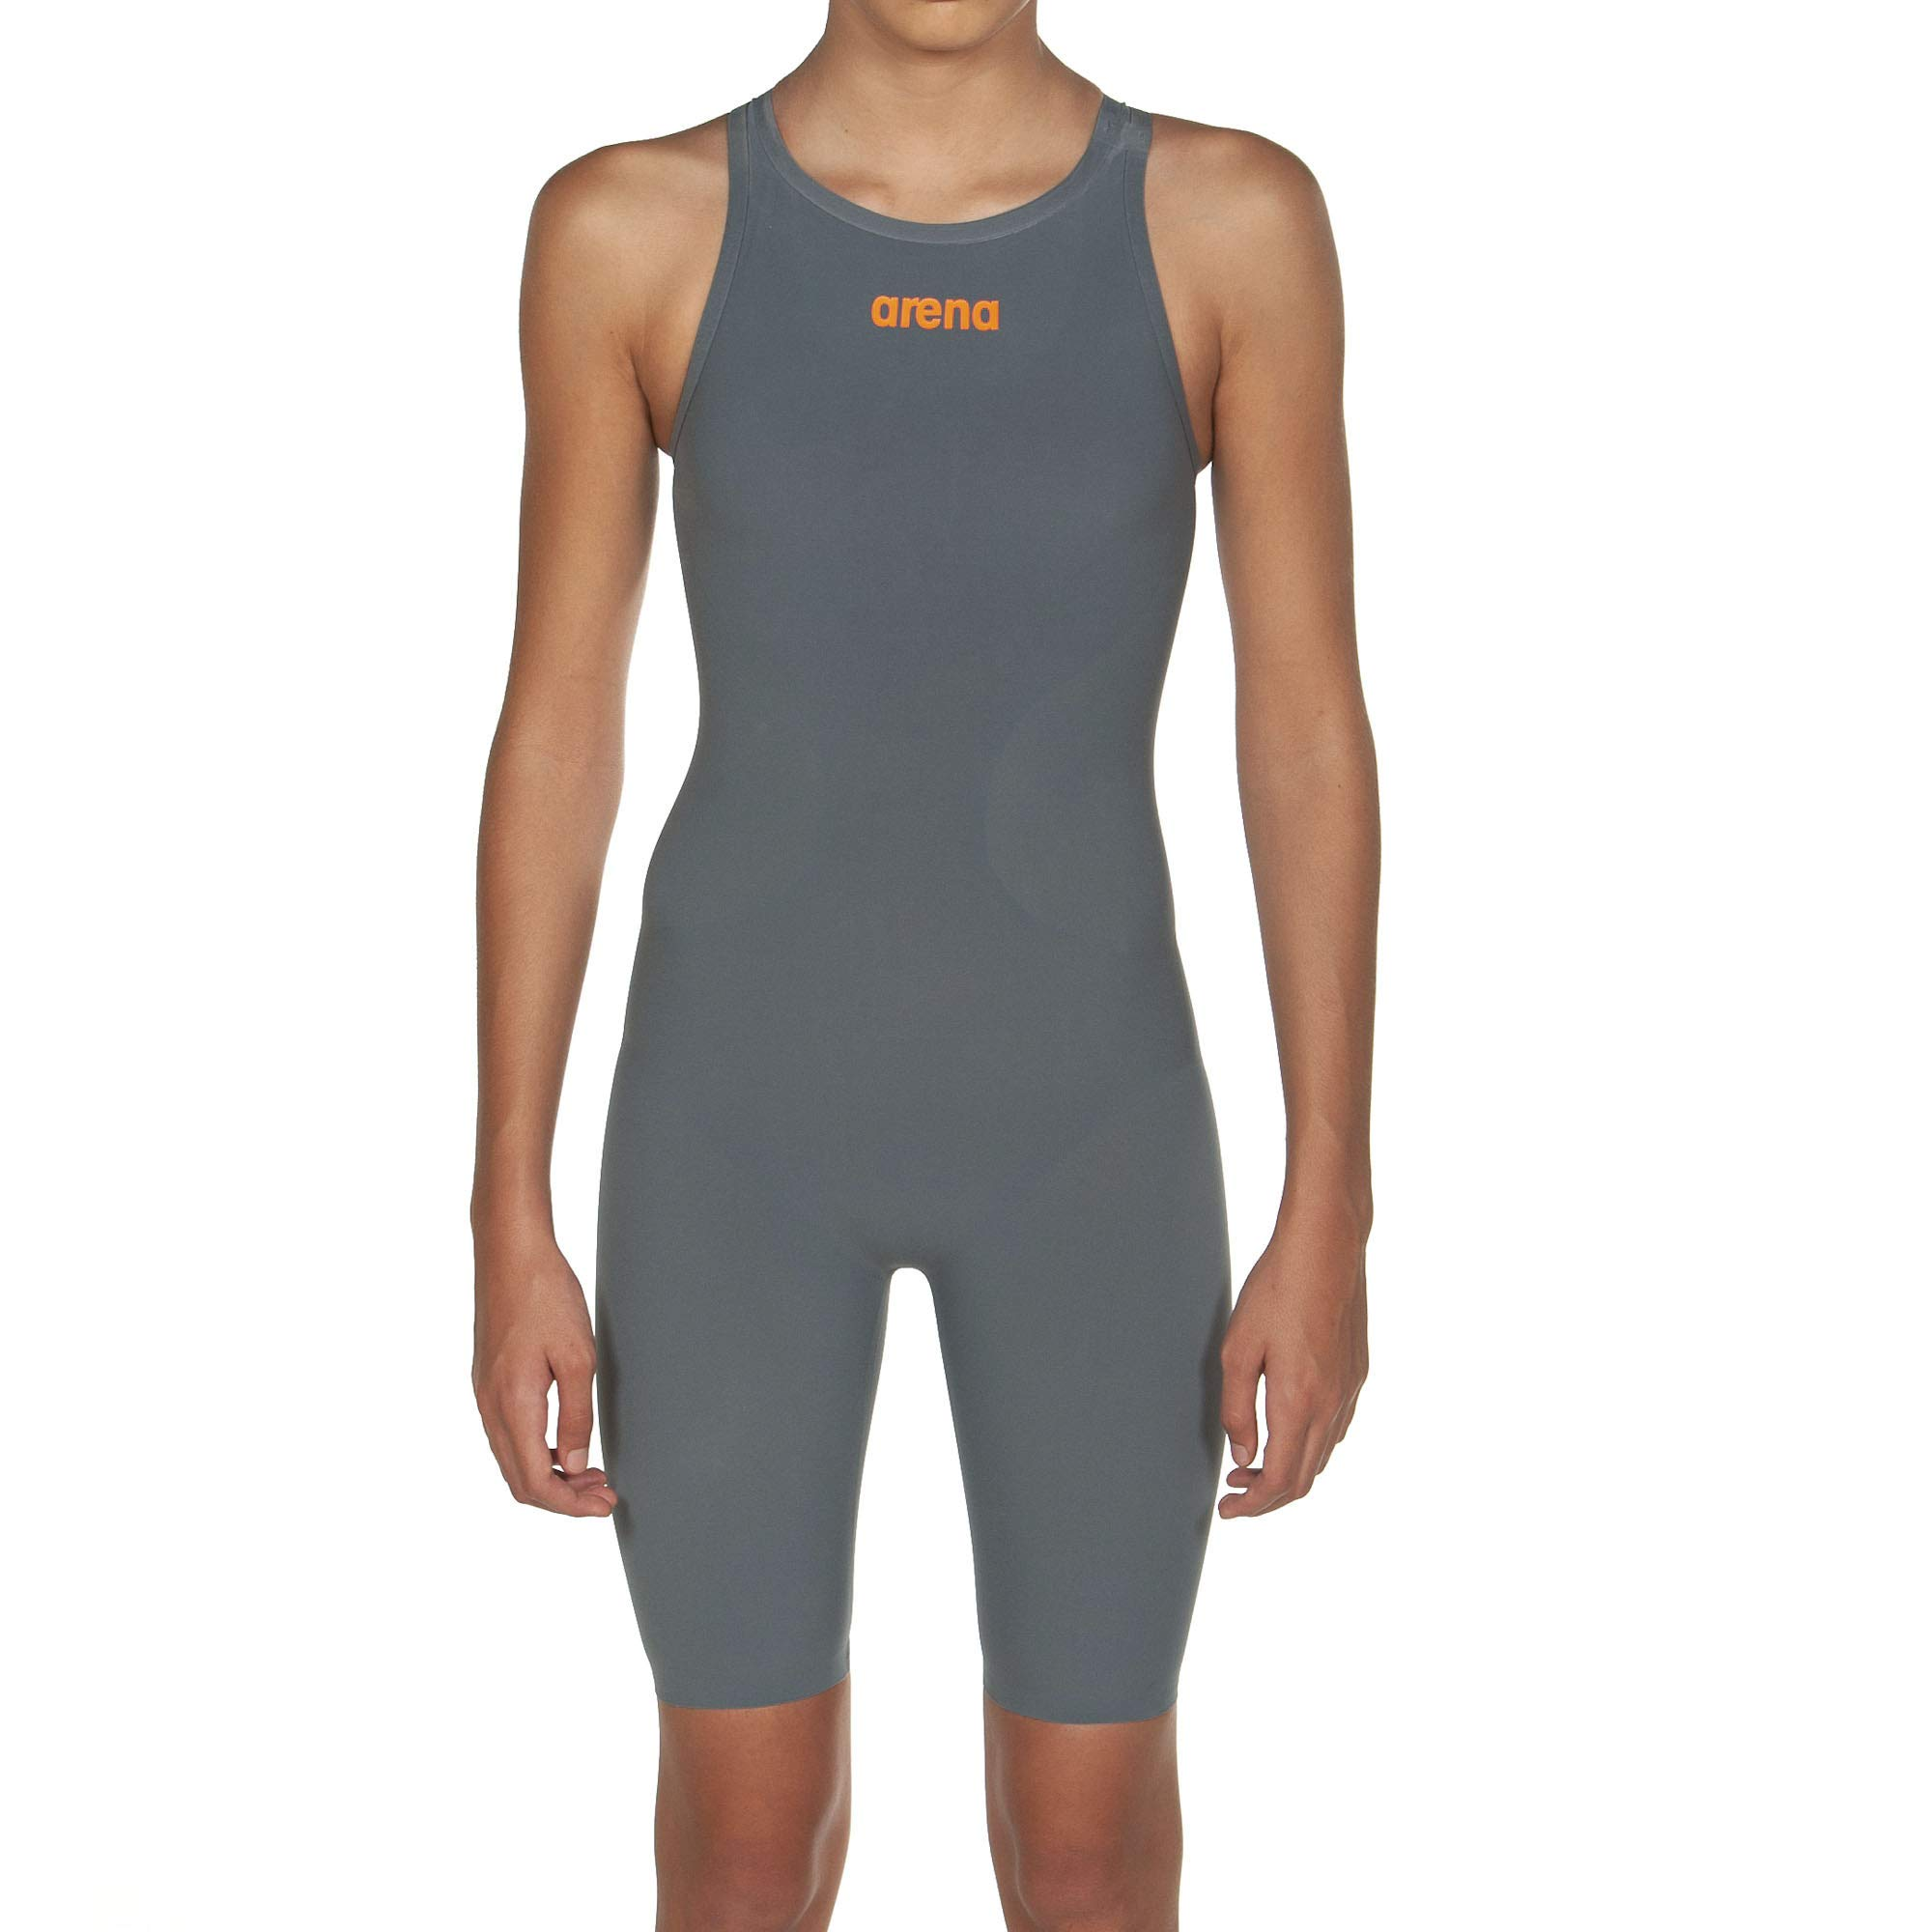 Arena Powerskin R-Evo One - Open Back, Grey/Bright Orange, 24